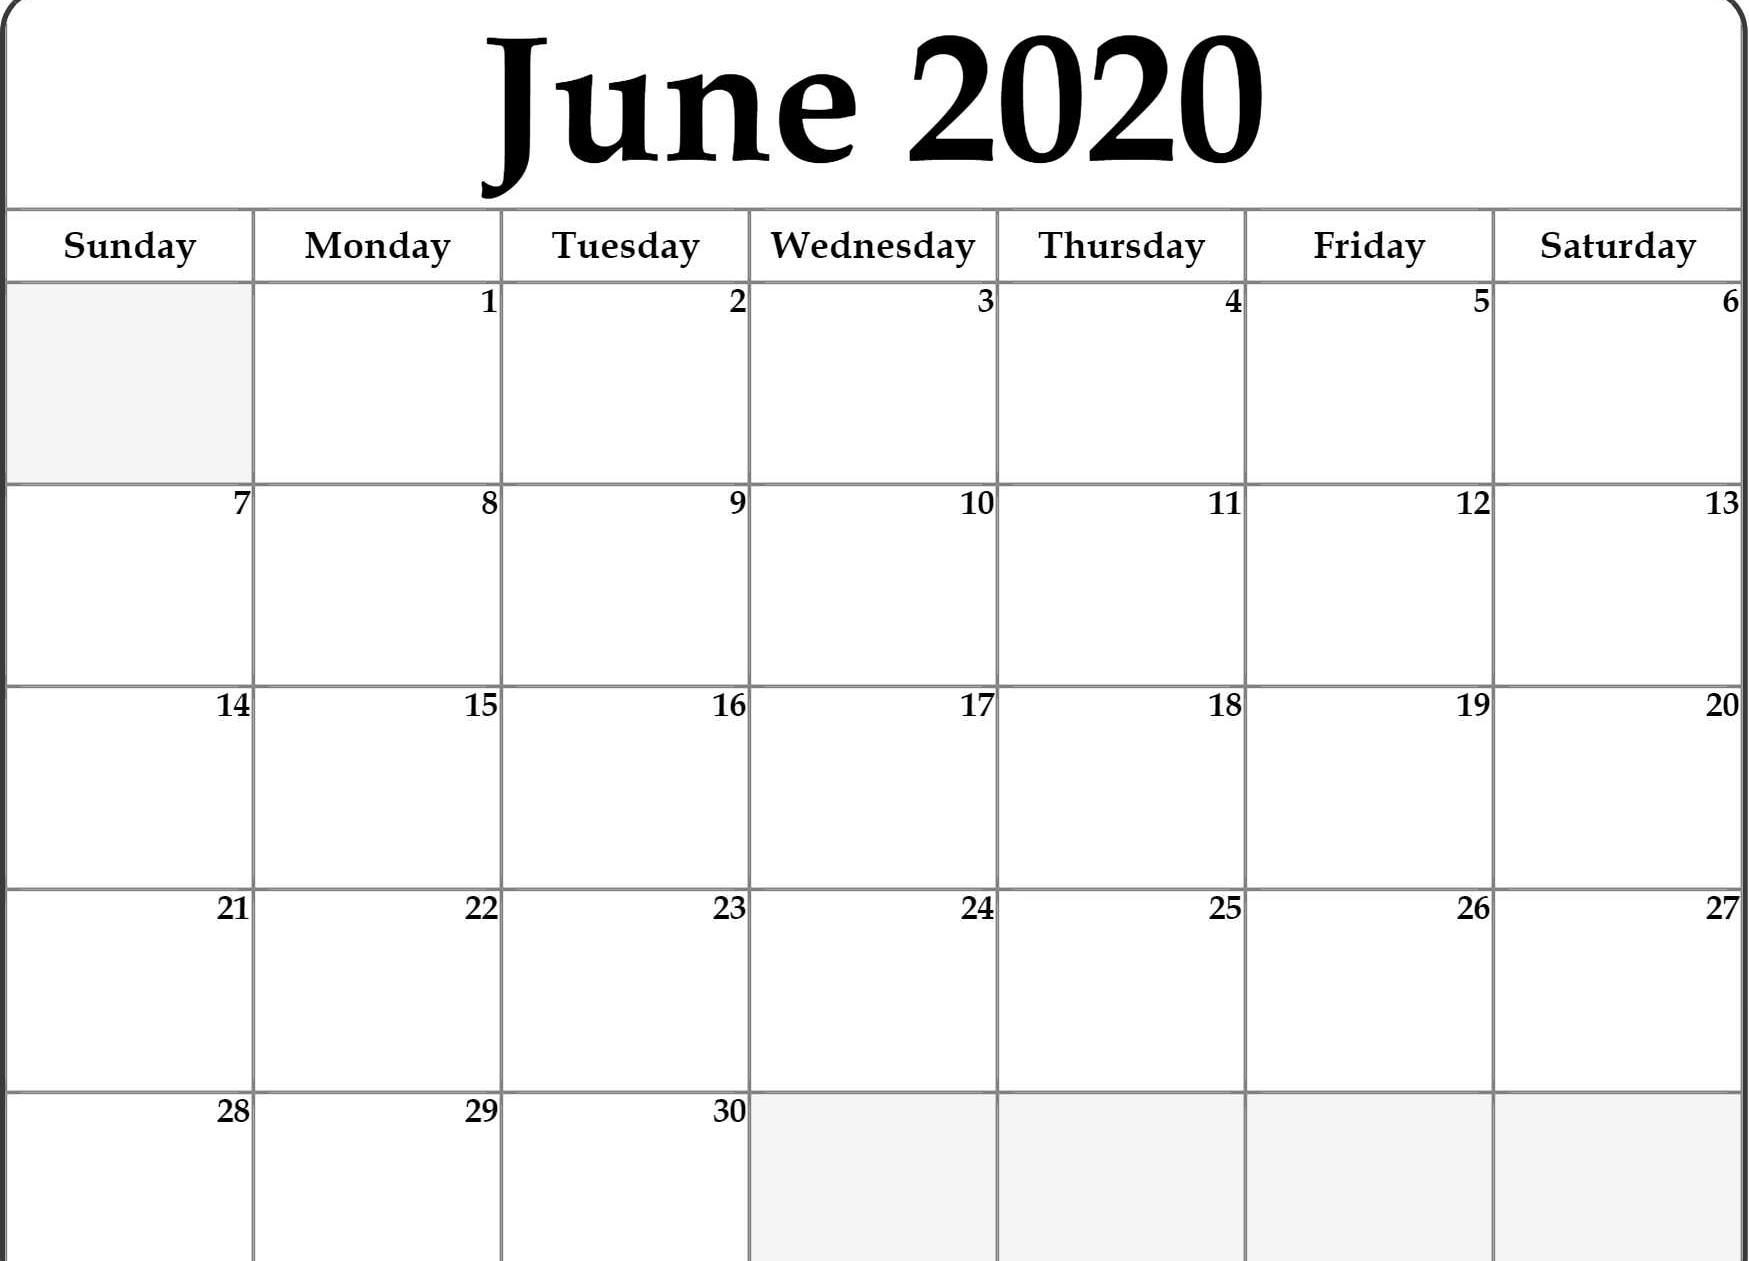 June Calendar 2020 Free Printable Template Pdf Word Excel-Blank June Calendar Template 2020